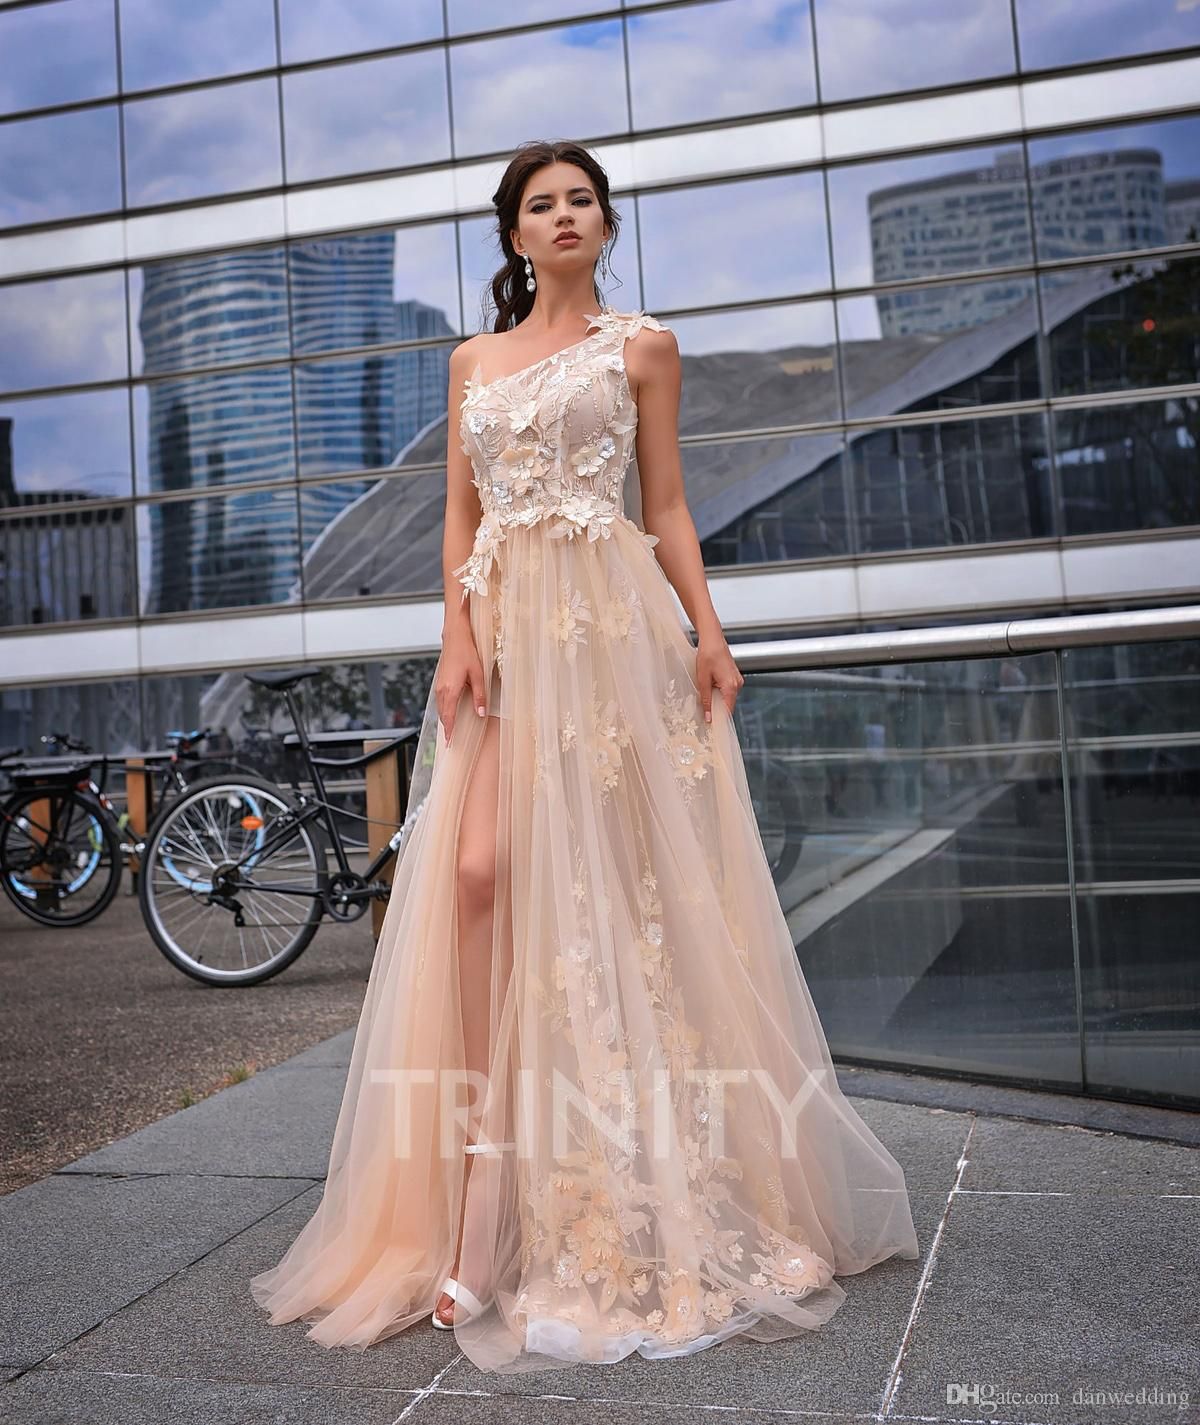 6669f5b81 Vogue Champagne One Shoulder Applique Evening Dresses Special Occasion  Party Dresses Prom Dresses Homecoming Custom Size 2 18 KF1220249 Pretty  Evening ...